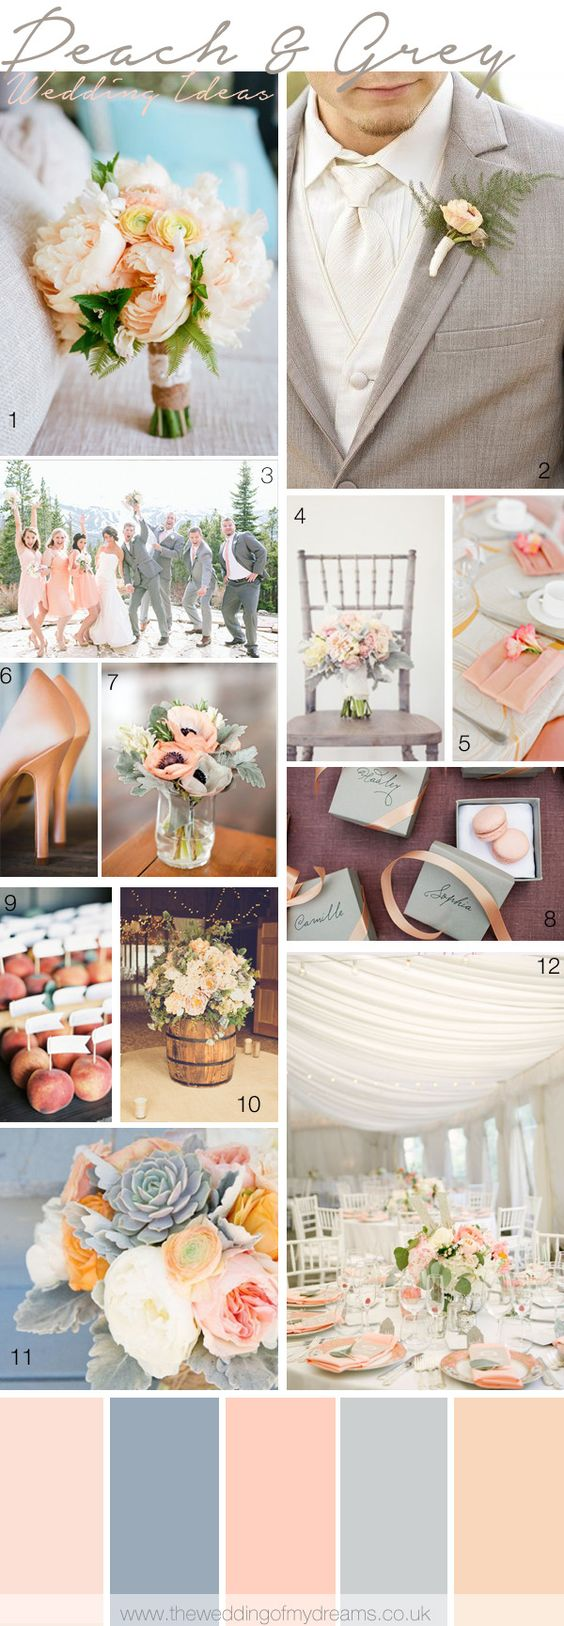 Peach And Grey Wedding Inspiration and Ideas I do actually like these colors... but I didn't want him to wear a grey-grey suit...